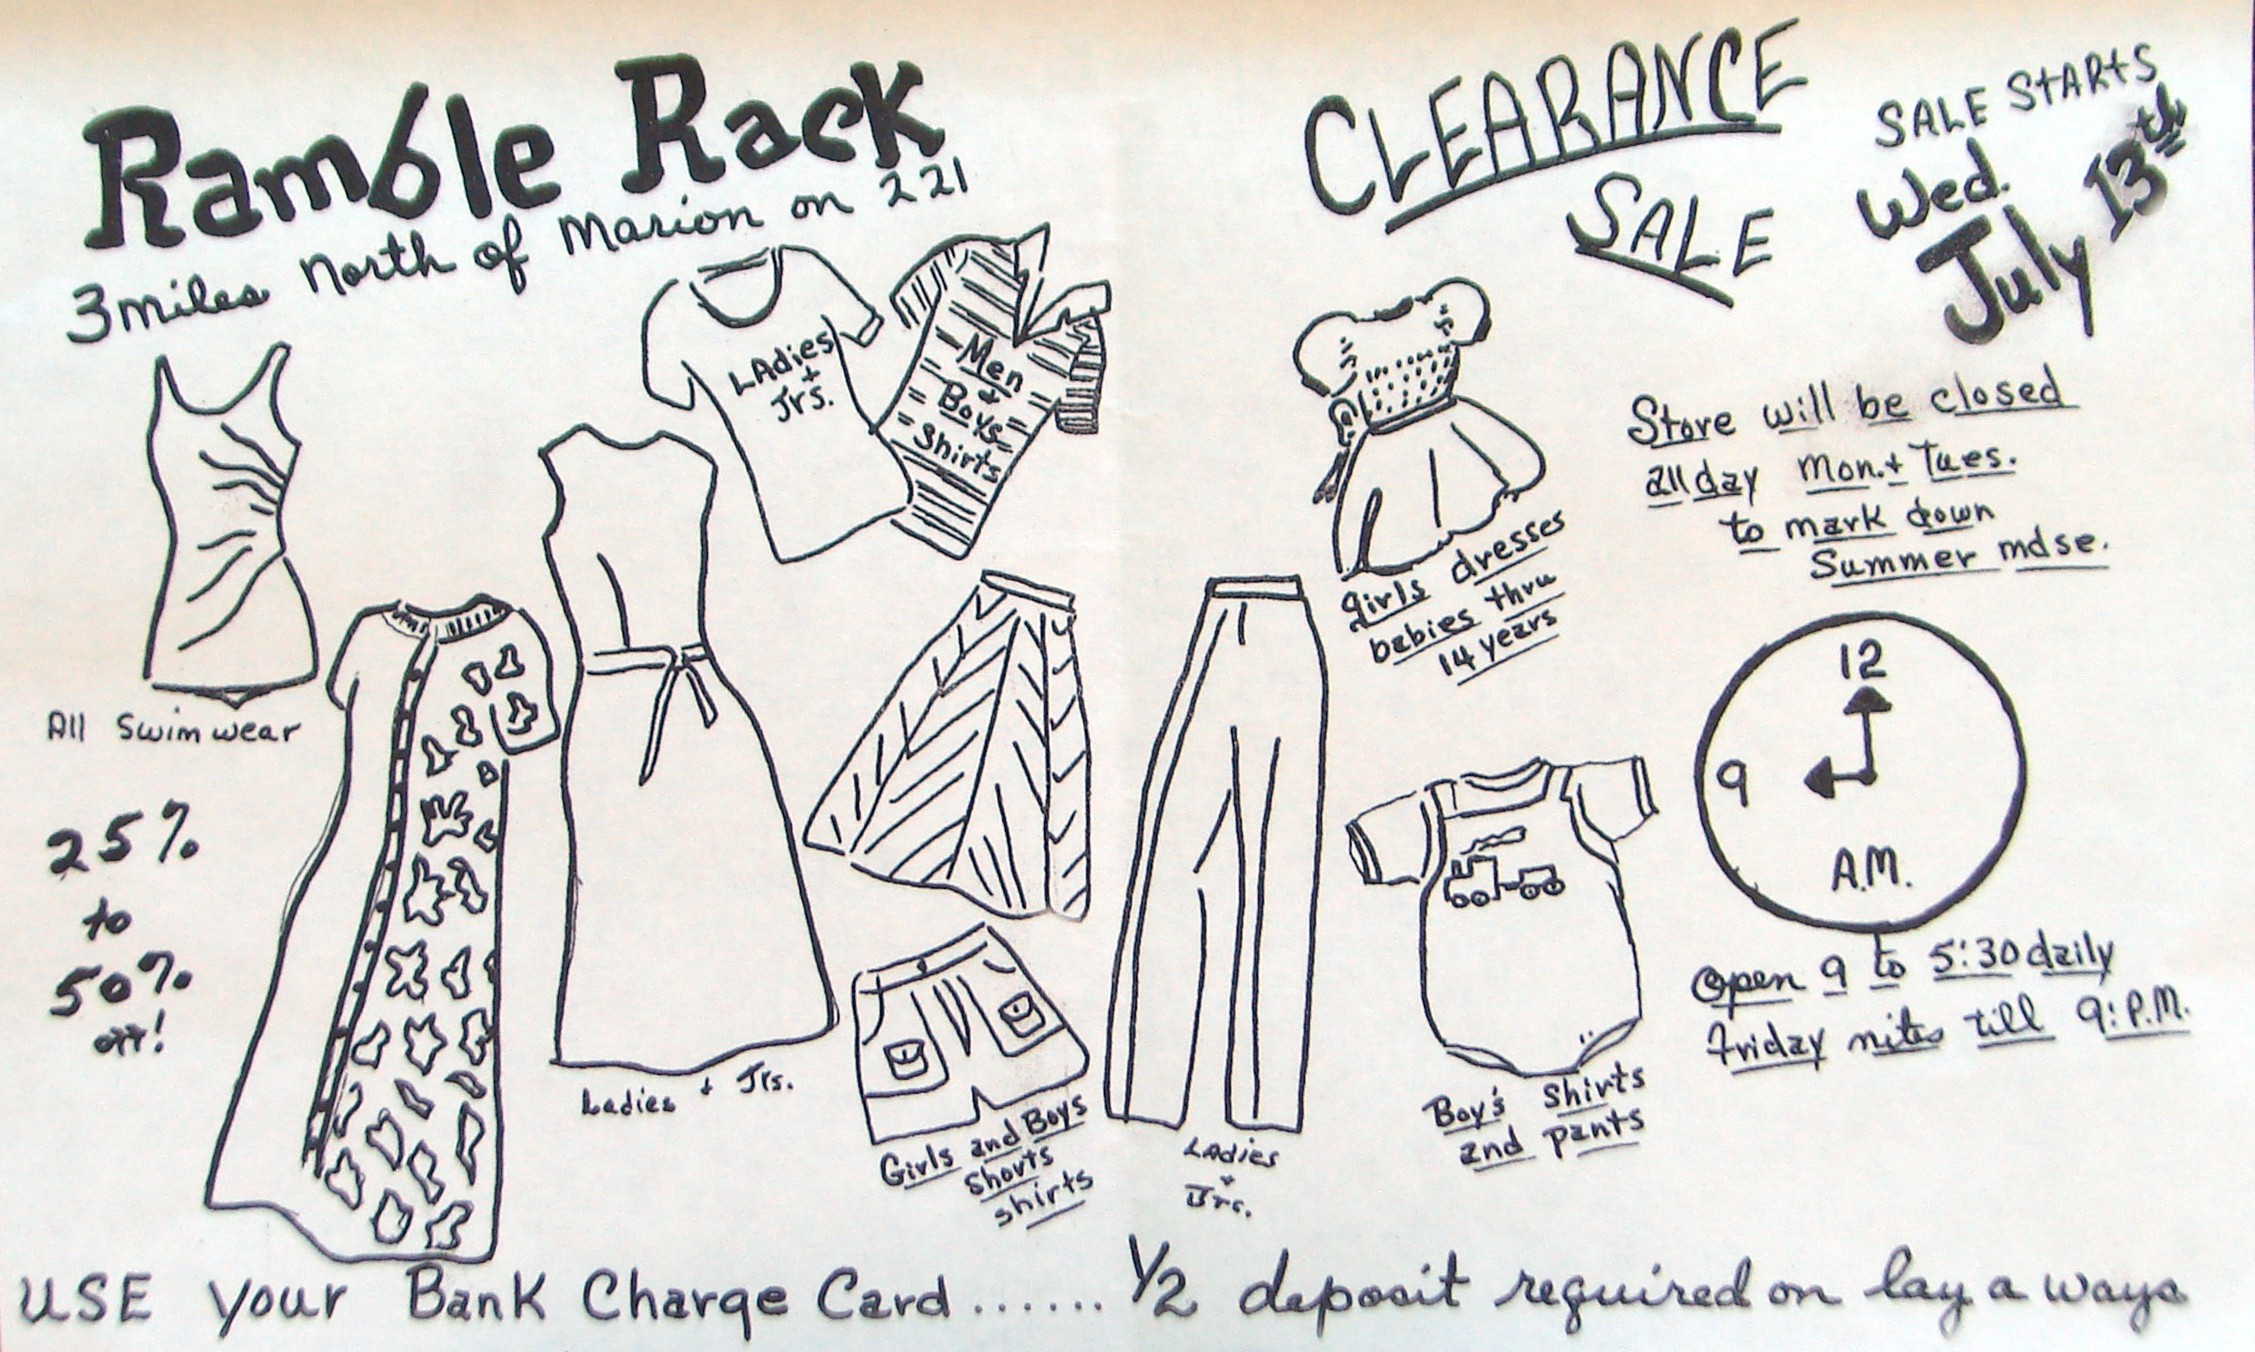 In the early days, everything at The Ramble Rack was do-it-yourself, even the ads.